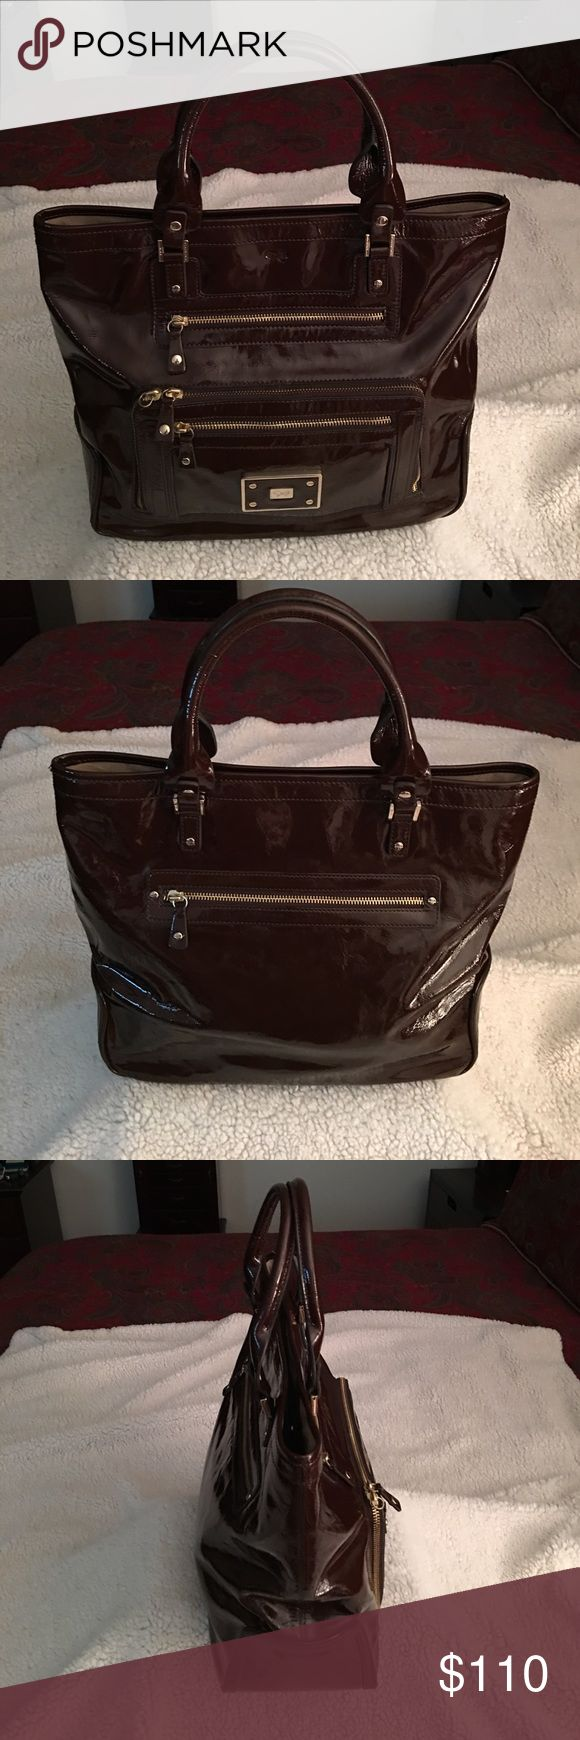 Anya Hindmarch Handbag Anaya Hindmarch Patent Leather Handbag.  Note it is missing a tab on one of the zippers.  It's barely noticeable. Anya Hindmarch Bags Satchels